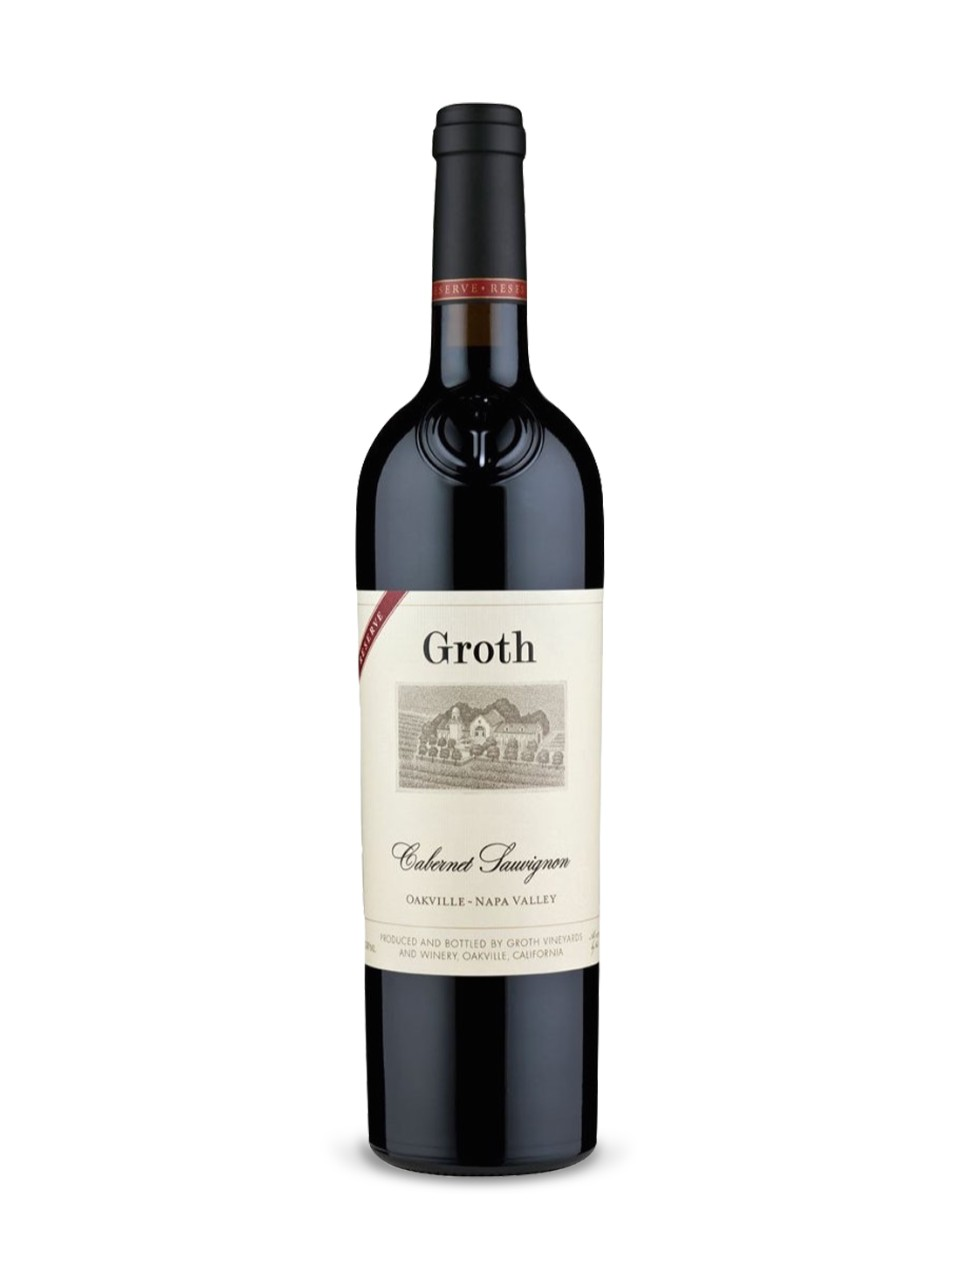 Groth Reserve Cabernet Sauvignon 2015 from LCBO